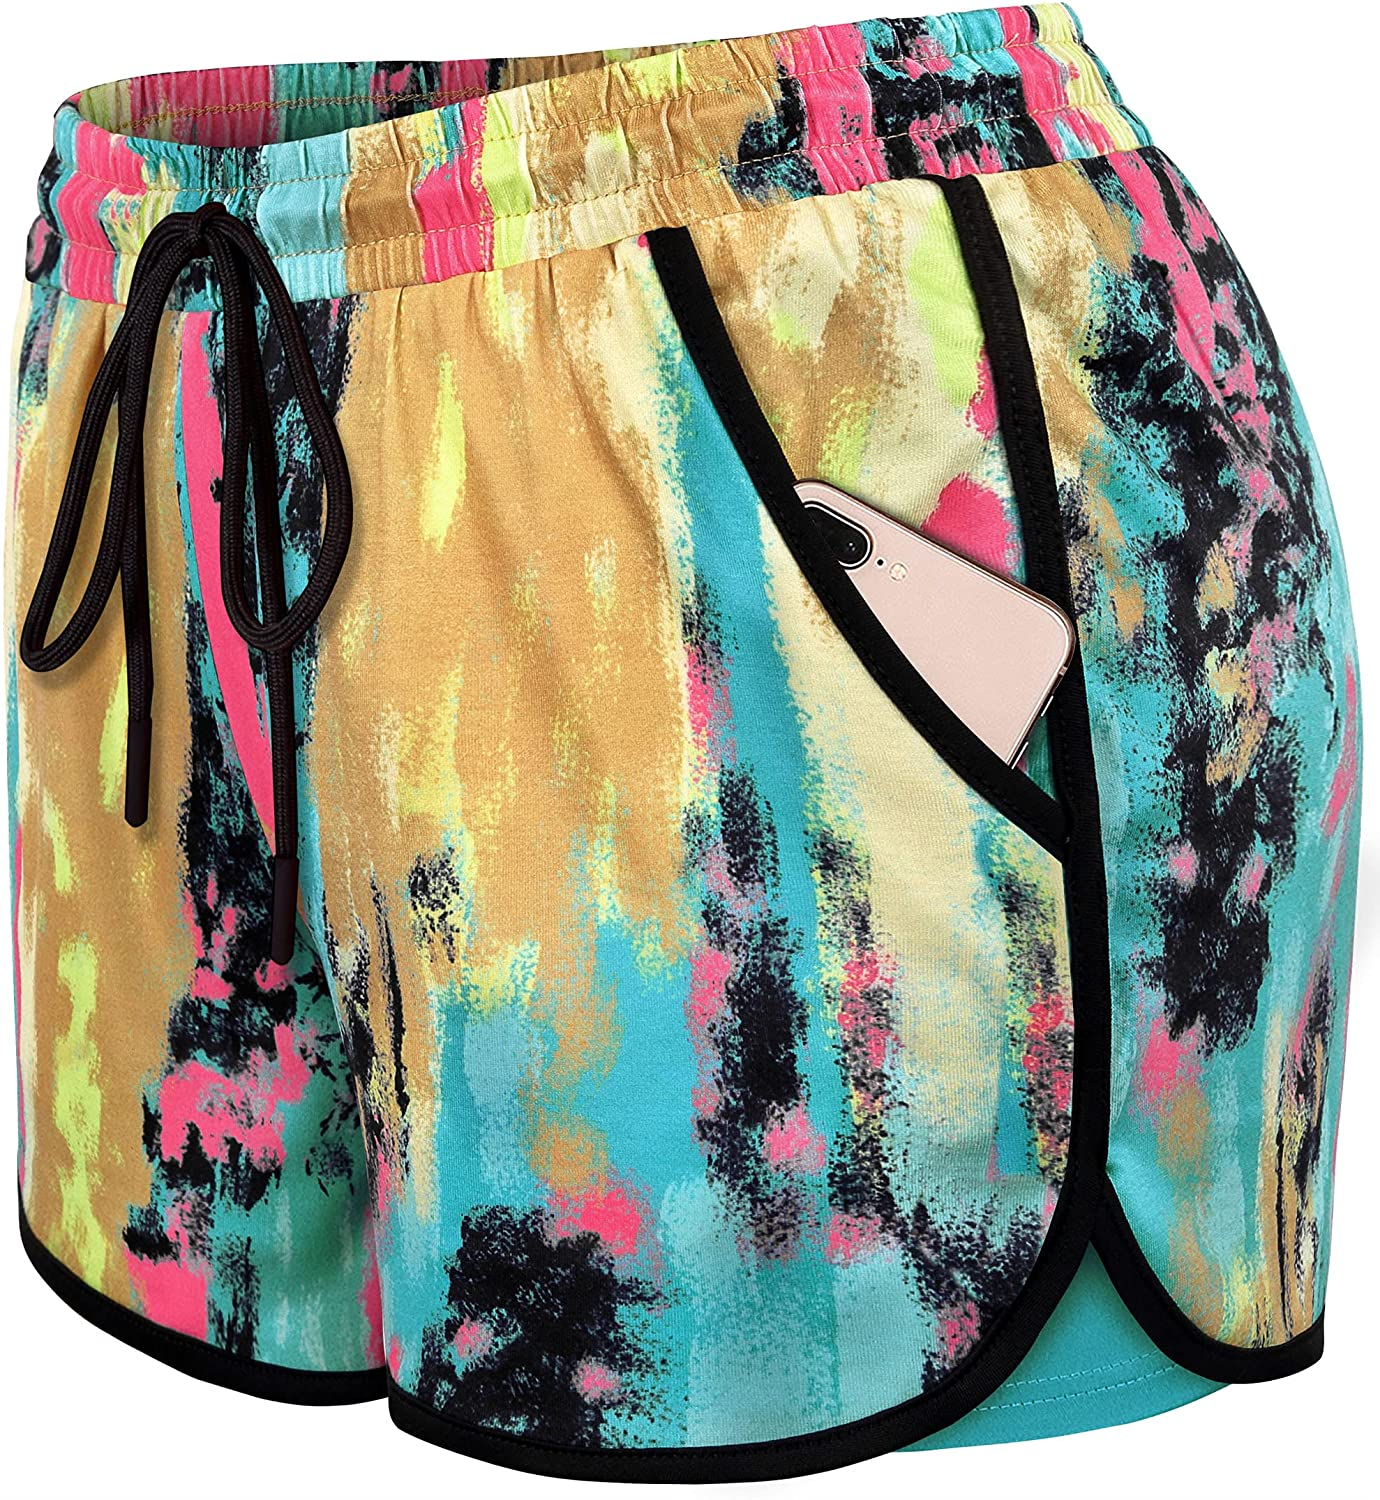 Blevonh Womens Los Angeles Mall 2 in1 Running Athletic with Yoga Workout Shorts Max 68% OFF P